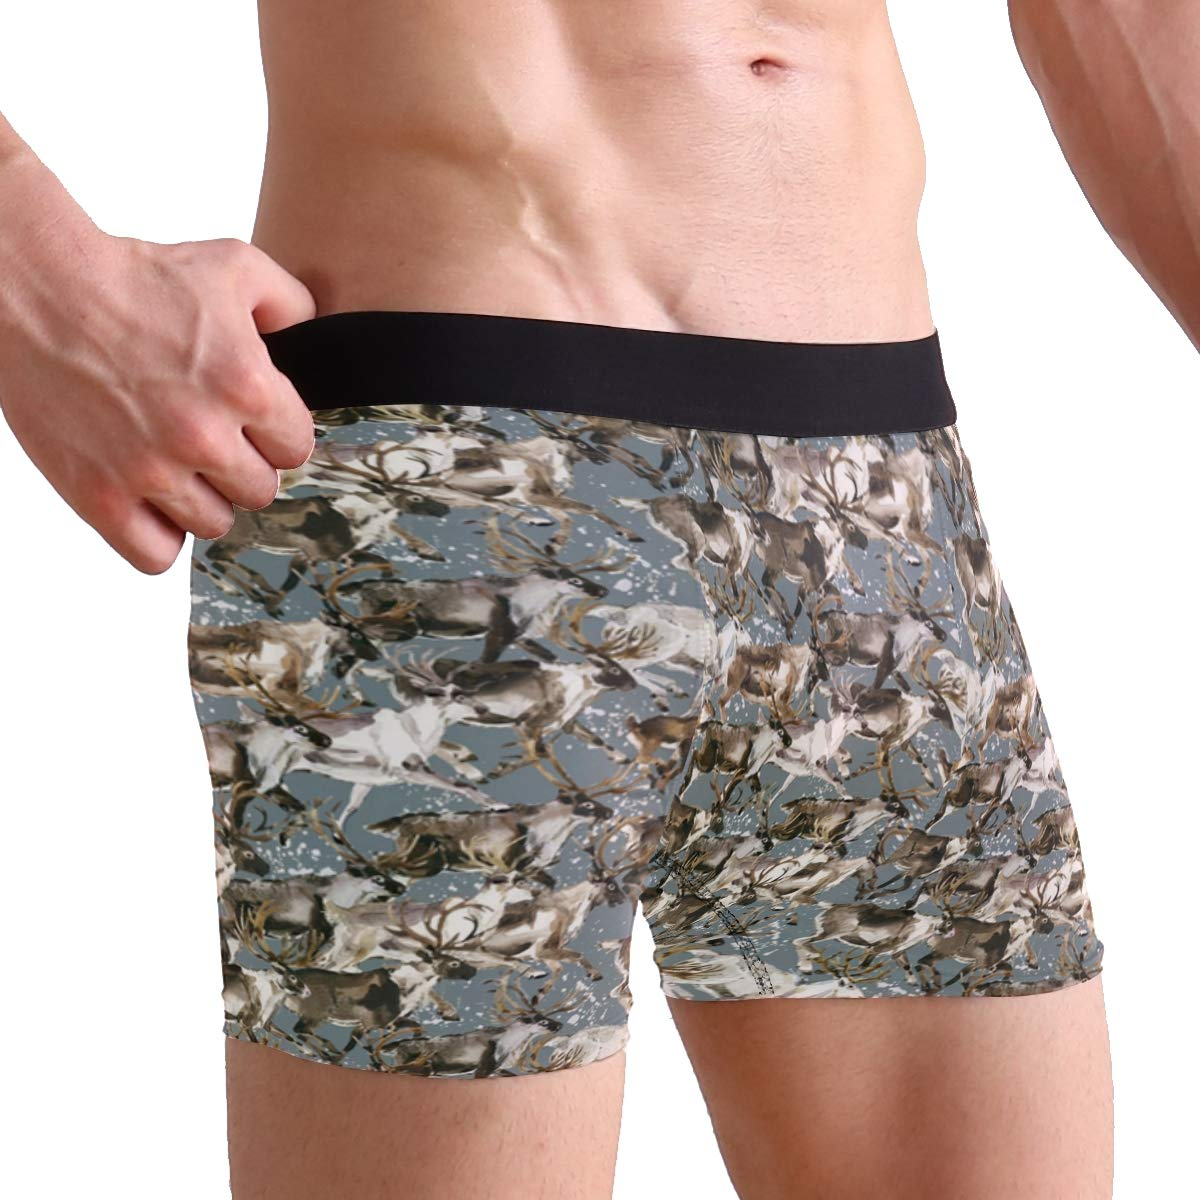 CATSDER Caribou Watercolor Reindeer Boxer Briefs Mens Underwear Pack Seamless Comfort Soft